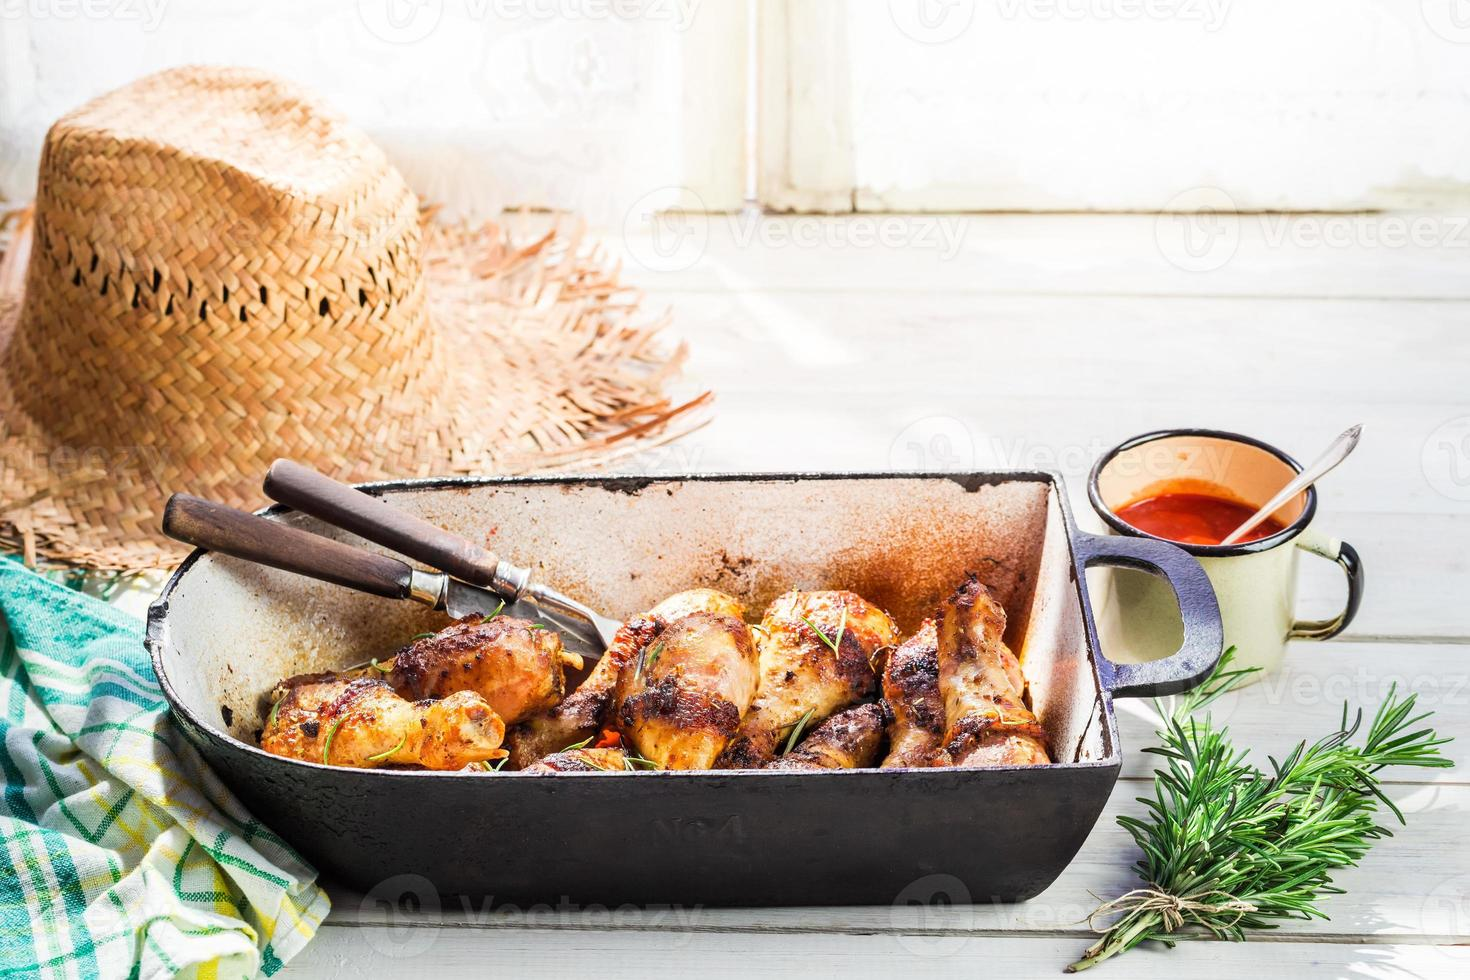 Hot chicken legs with herbs and sauce in summer kitchen photo